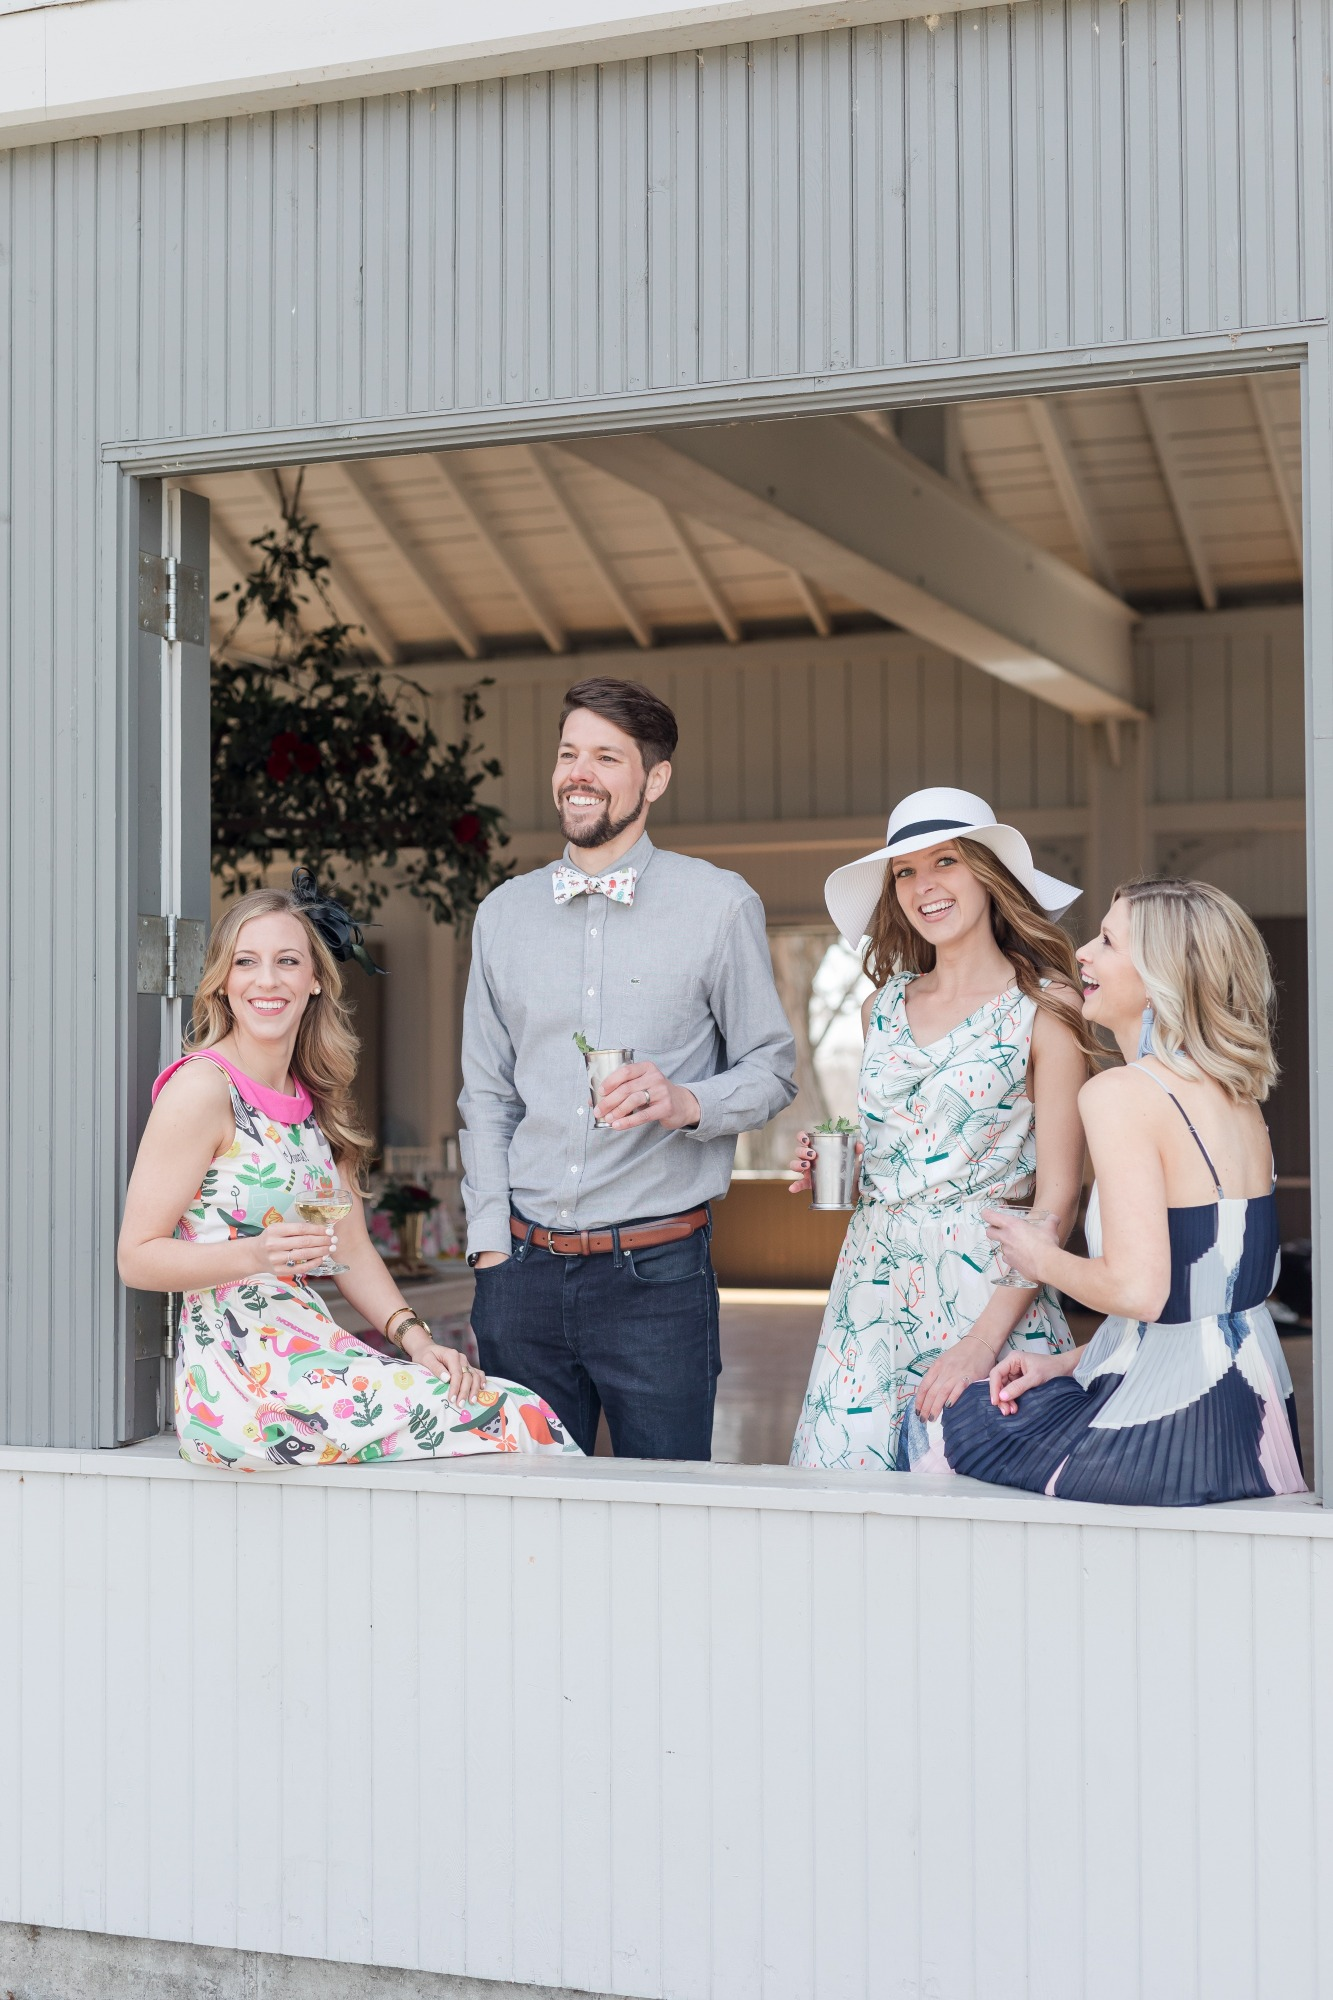 Guests and Hats from Off to the Races Derby Party Styled by Cherry Blossom Events | Black Twine